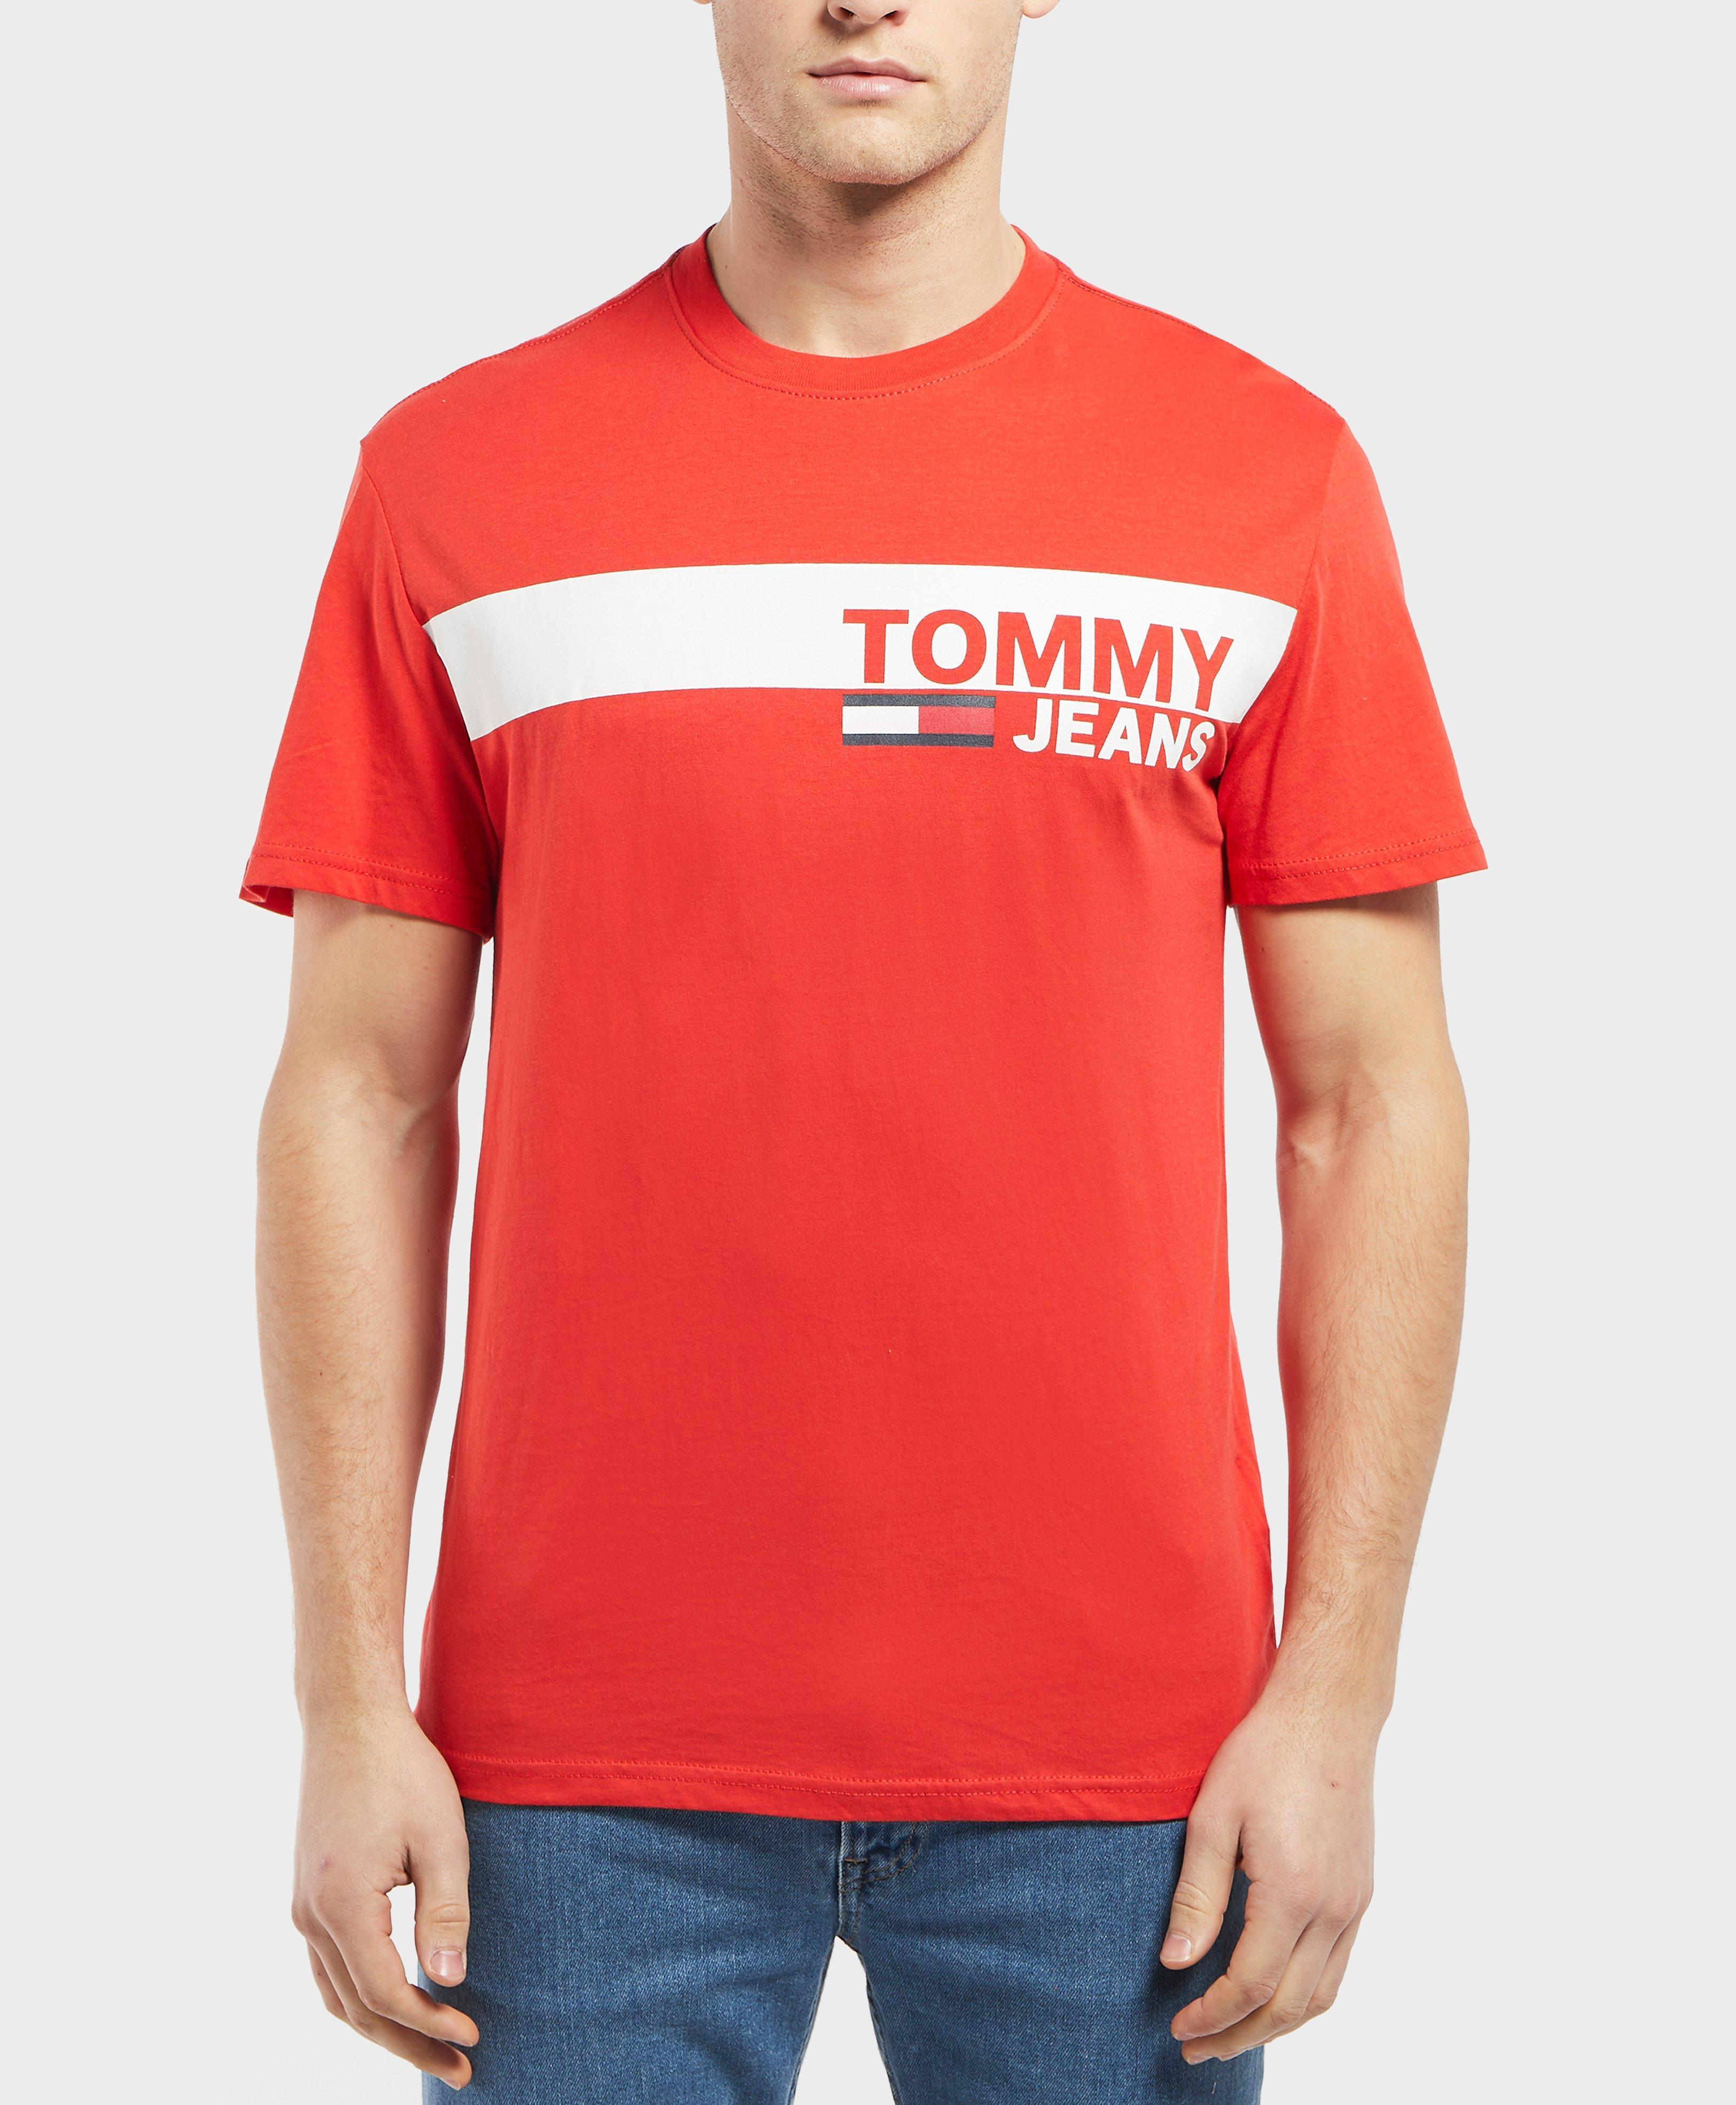 a7d03c38 Tommy Hilfiger Panel Logo Short Sleeve T-shirt in Red for Men - Lyst